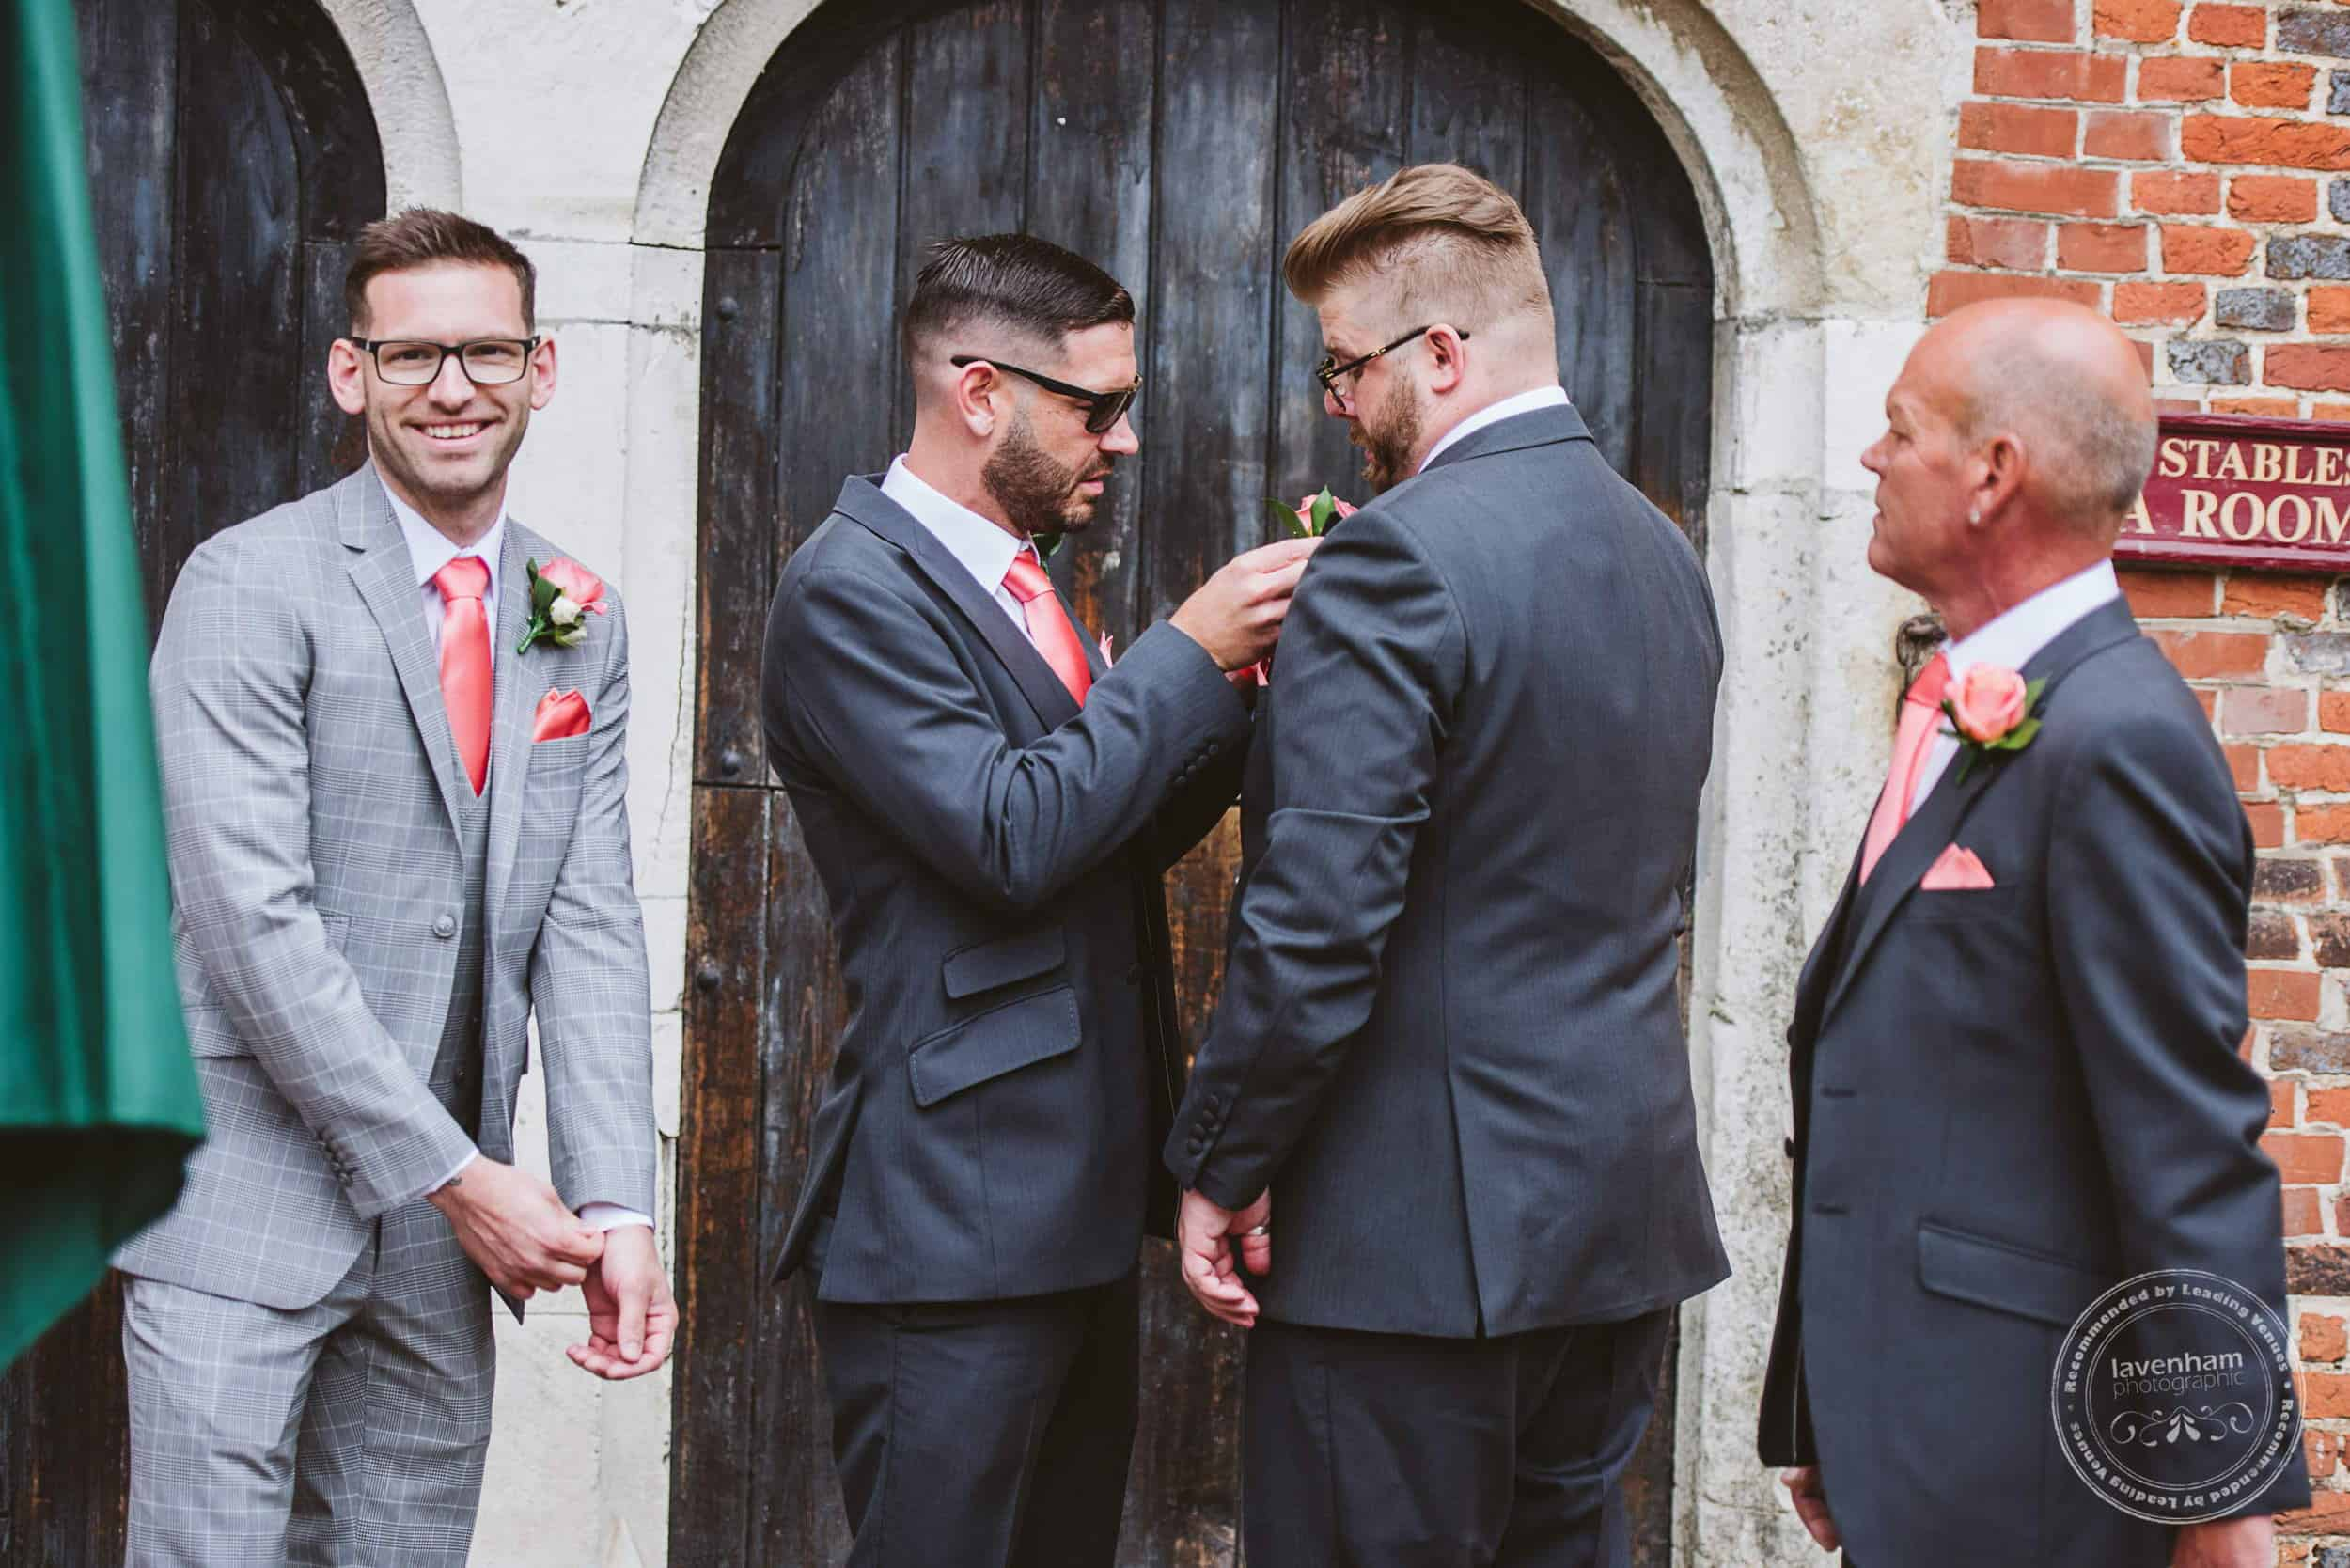 140717 Layer Marney Wedding Photography by Lavenham Photographic 027